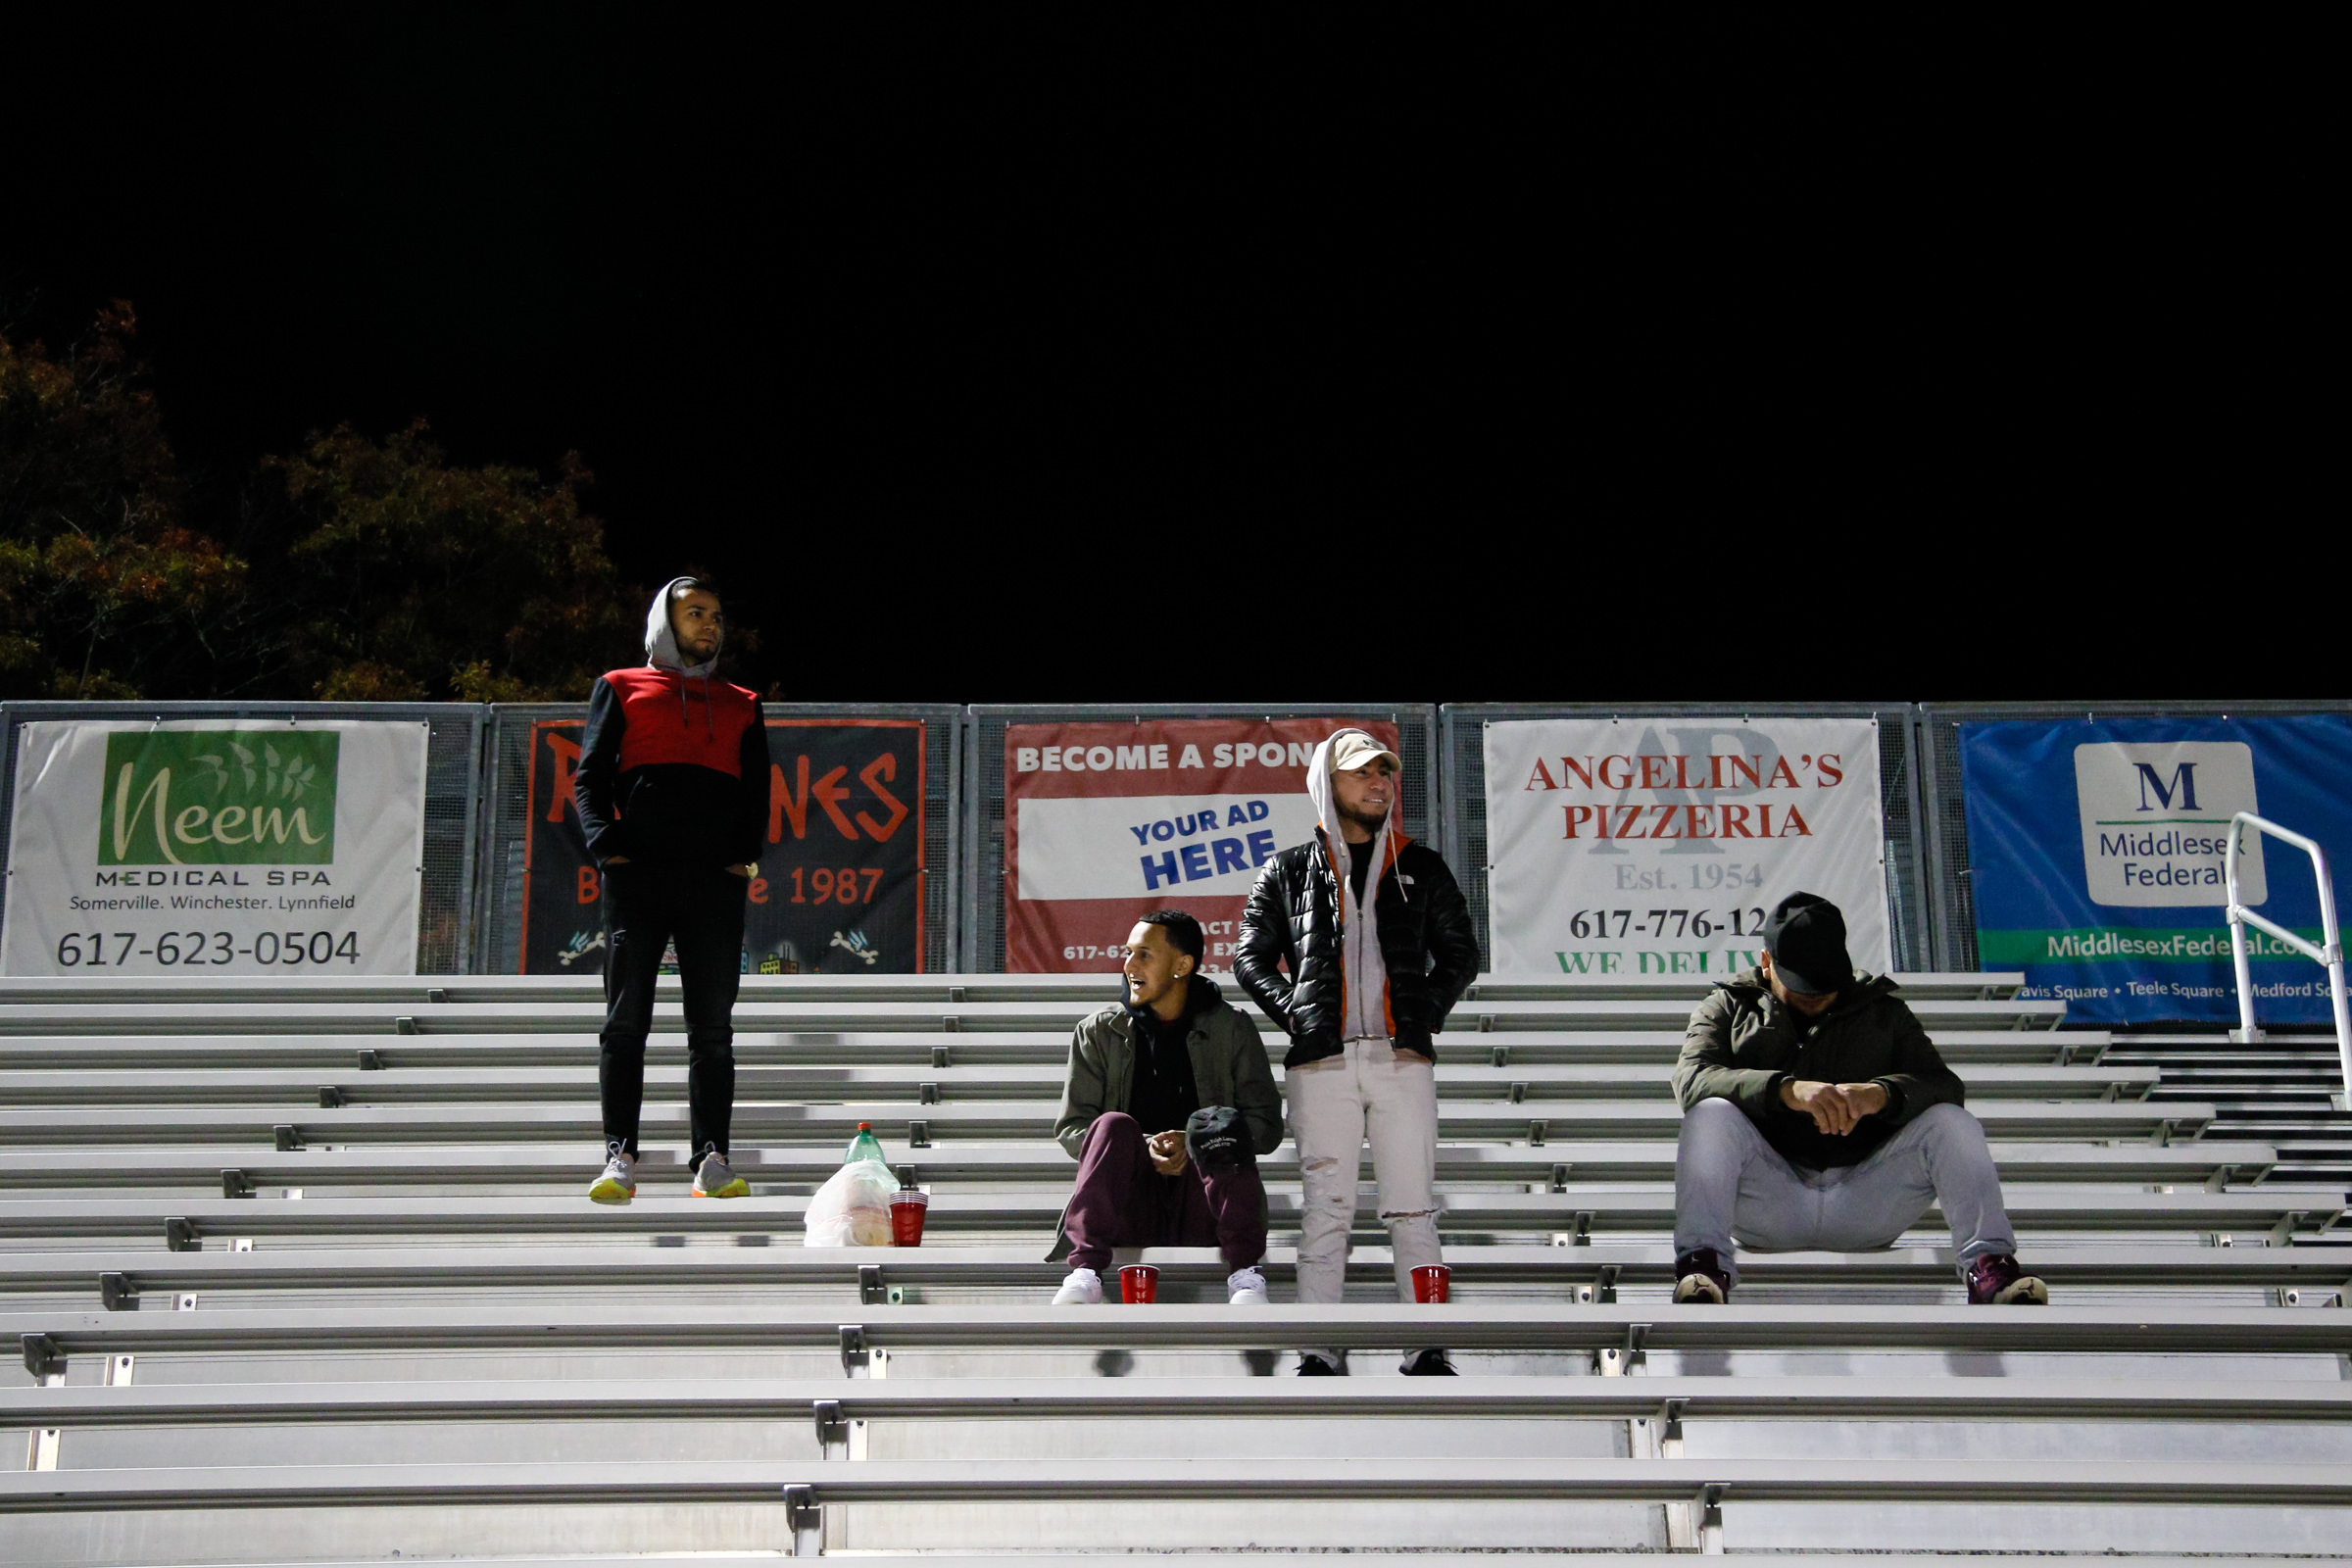 Somerville, MA: A small band of fans watches the game. Safira FC defeated Boston City FC 4-1 in a 2019 Lamar Hunt U.S. Open Cup game on October 20, 2018. (c) Burt Granofsky